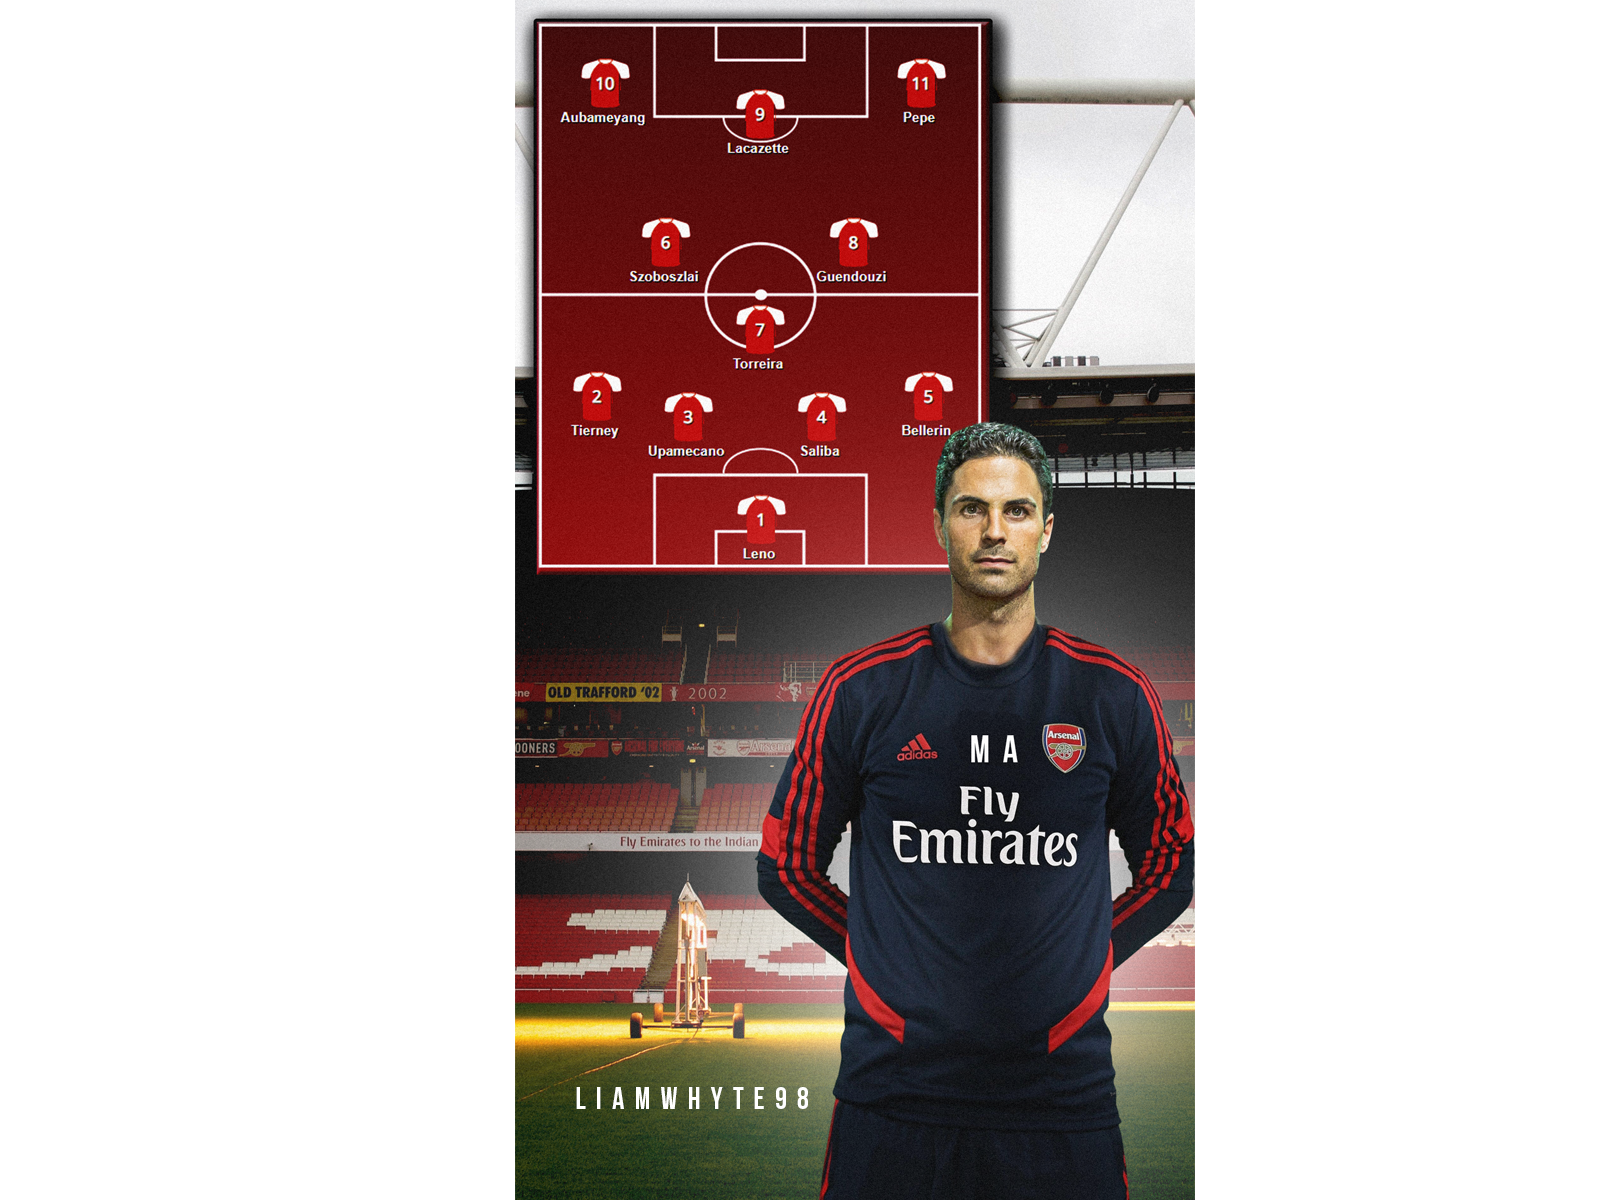 Mikel Arteta Future Arsenal Manager Projected Line Up By Liam Whyte On Dribbble